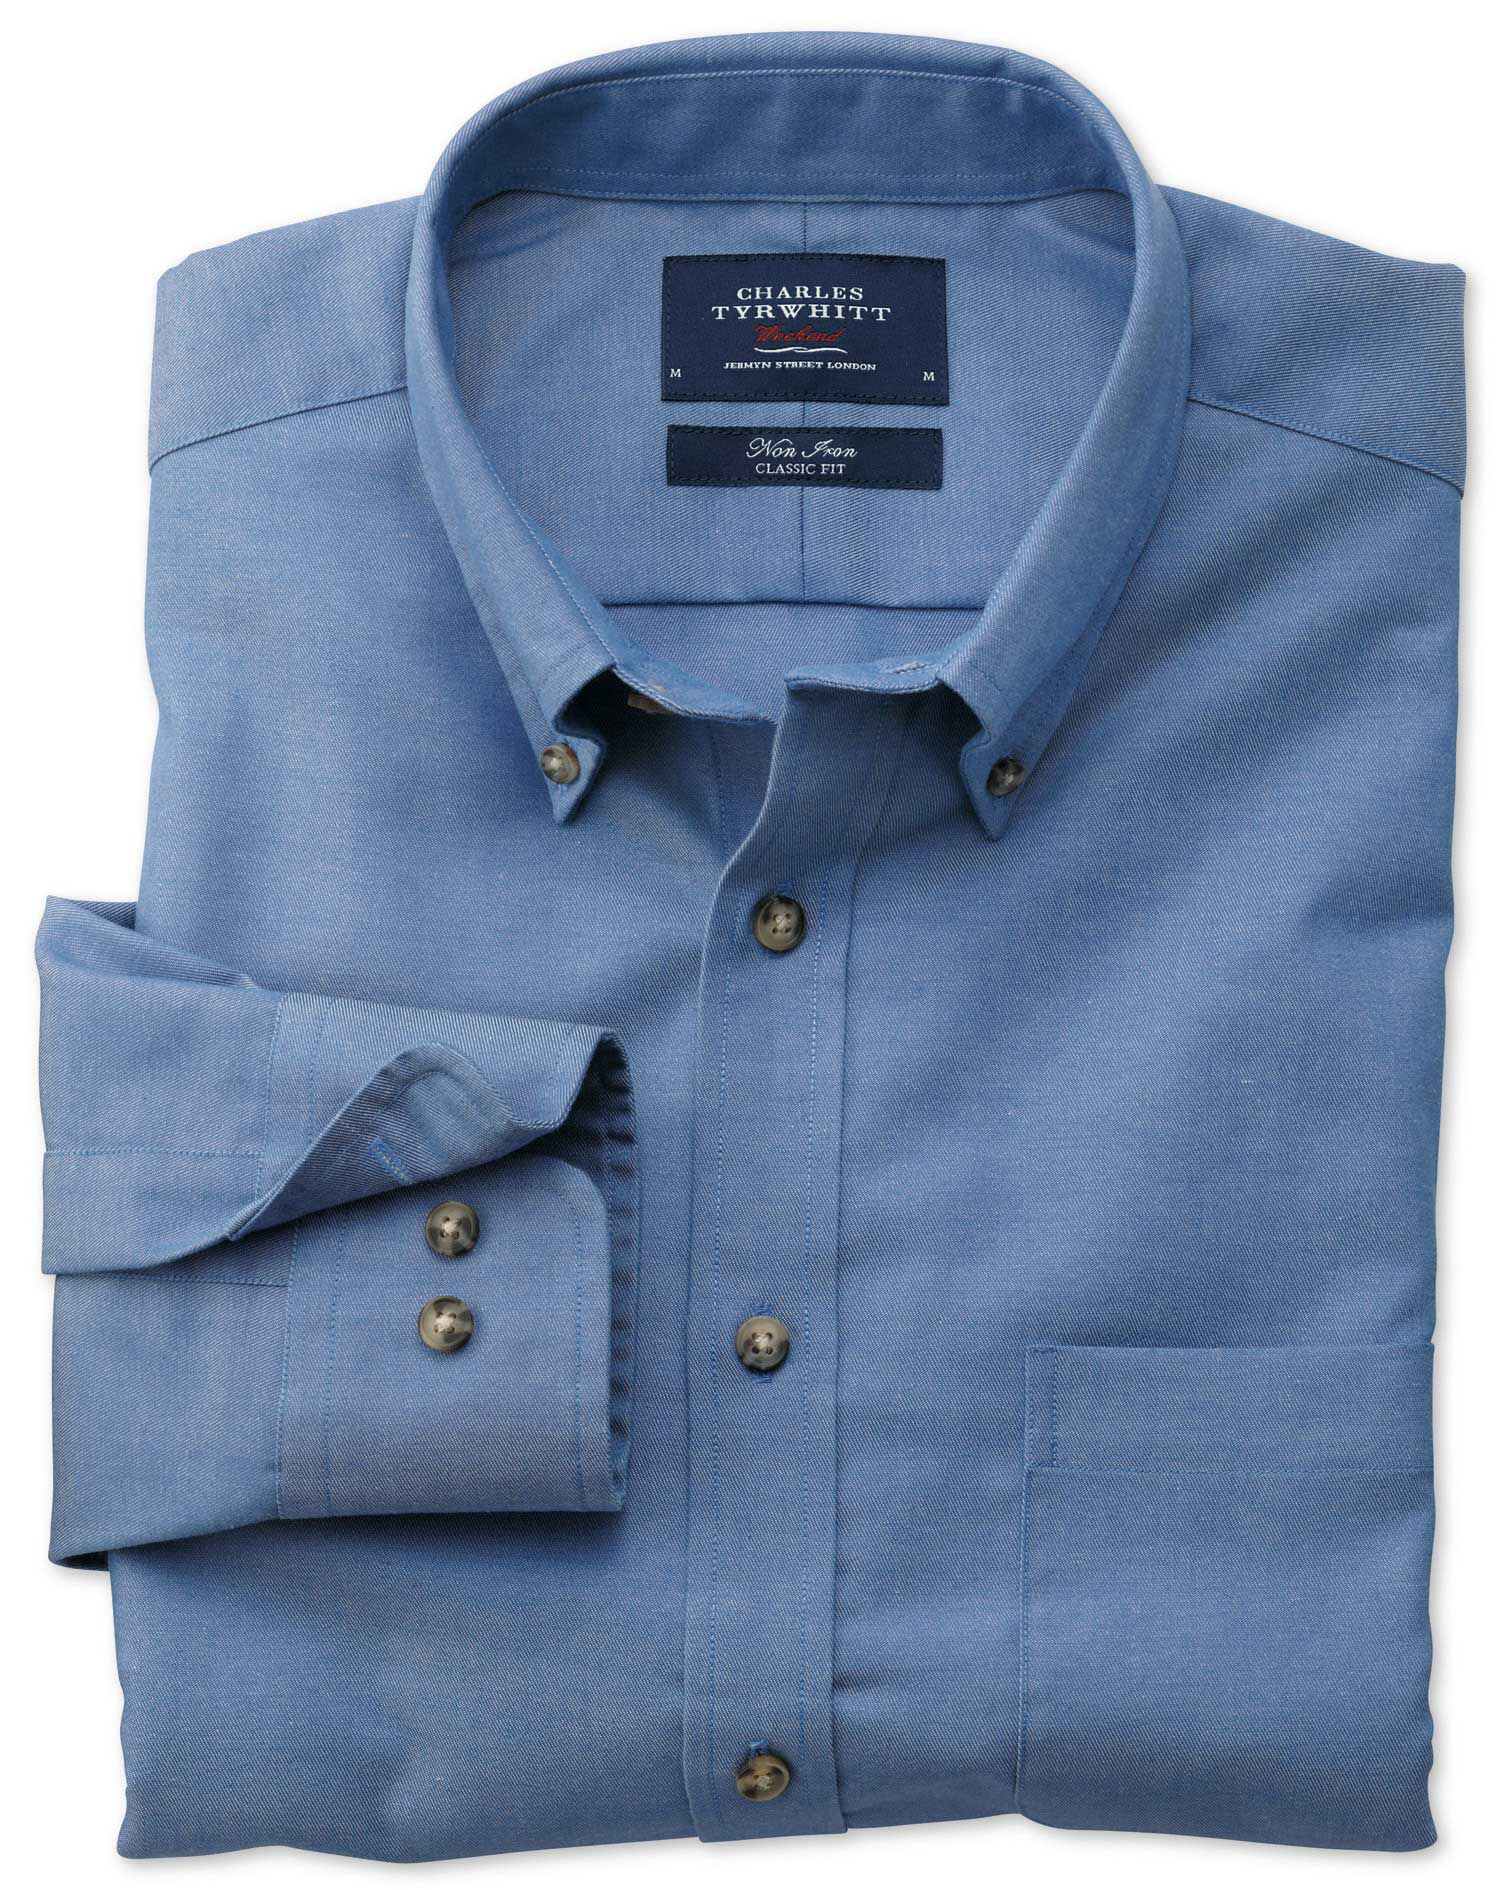 Slim Fit Non-Iron Twill Blue Cotton Shirt Single Cuff Size Small by Charles Tyrwhitt